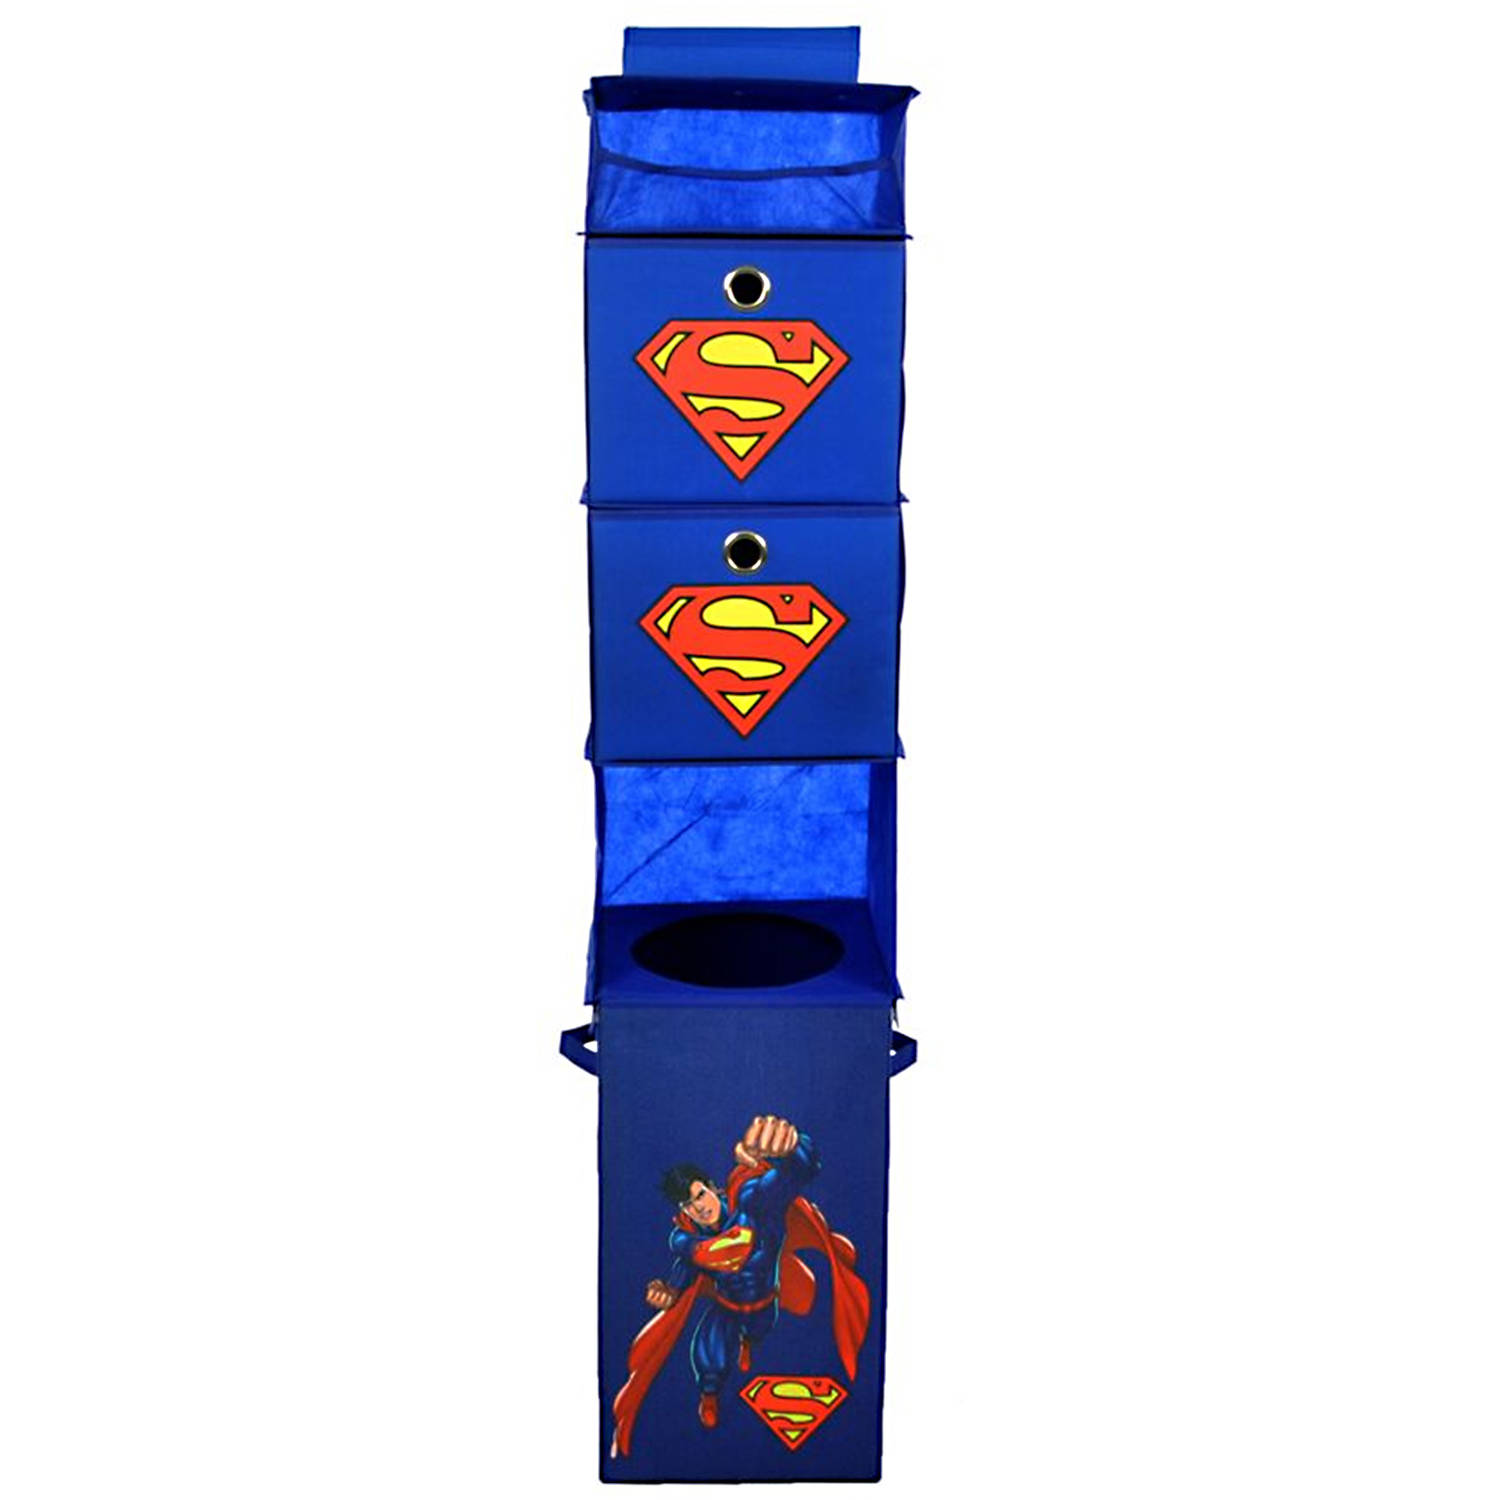 Superman Blue Closet Hanging Organizer with 2 Storage Bins by Modern Littles